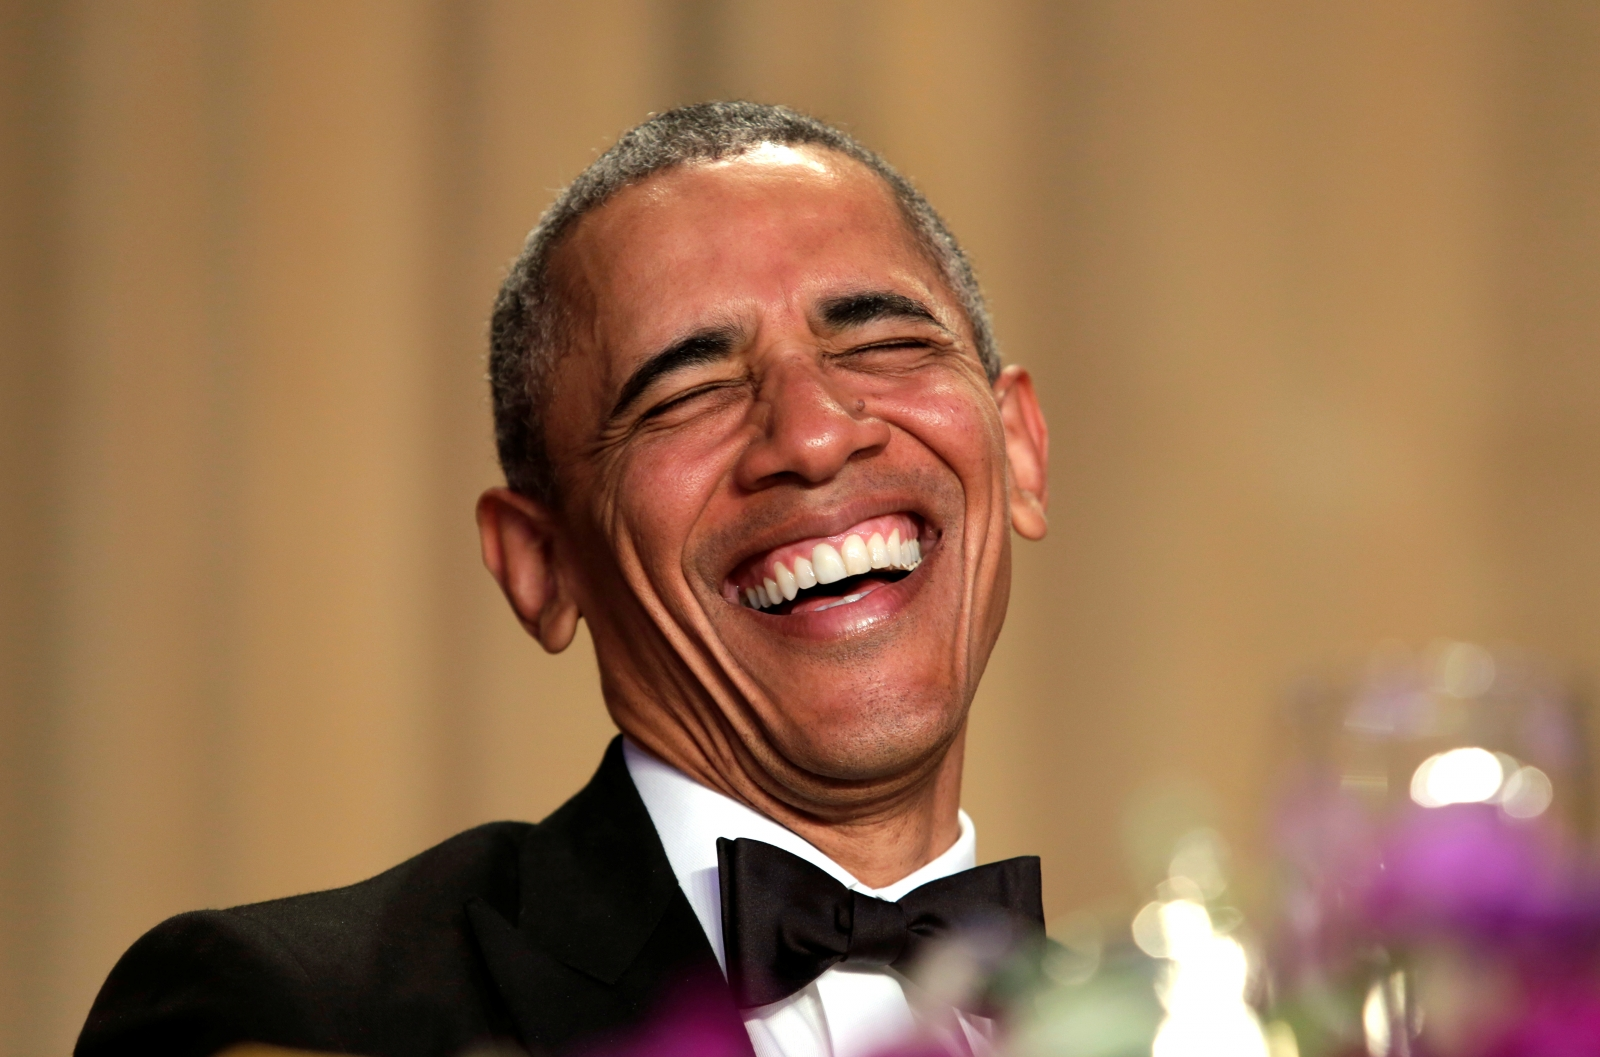 Barack Obama laughing